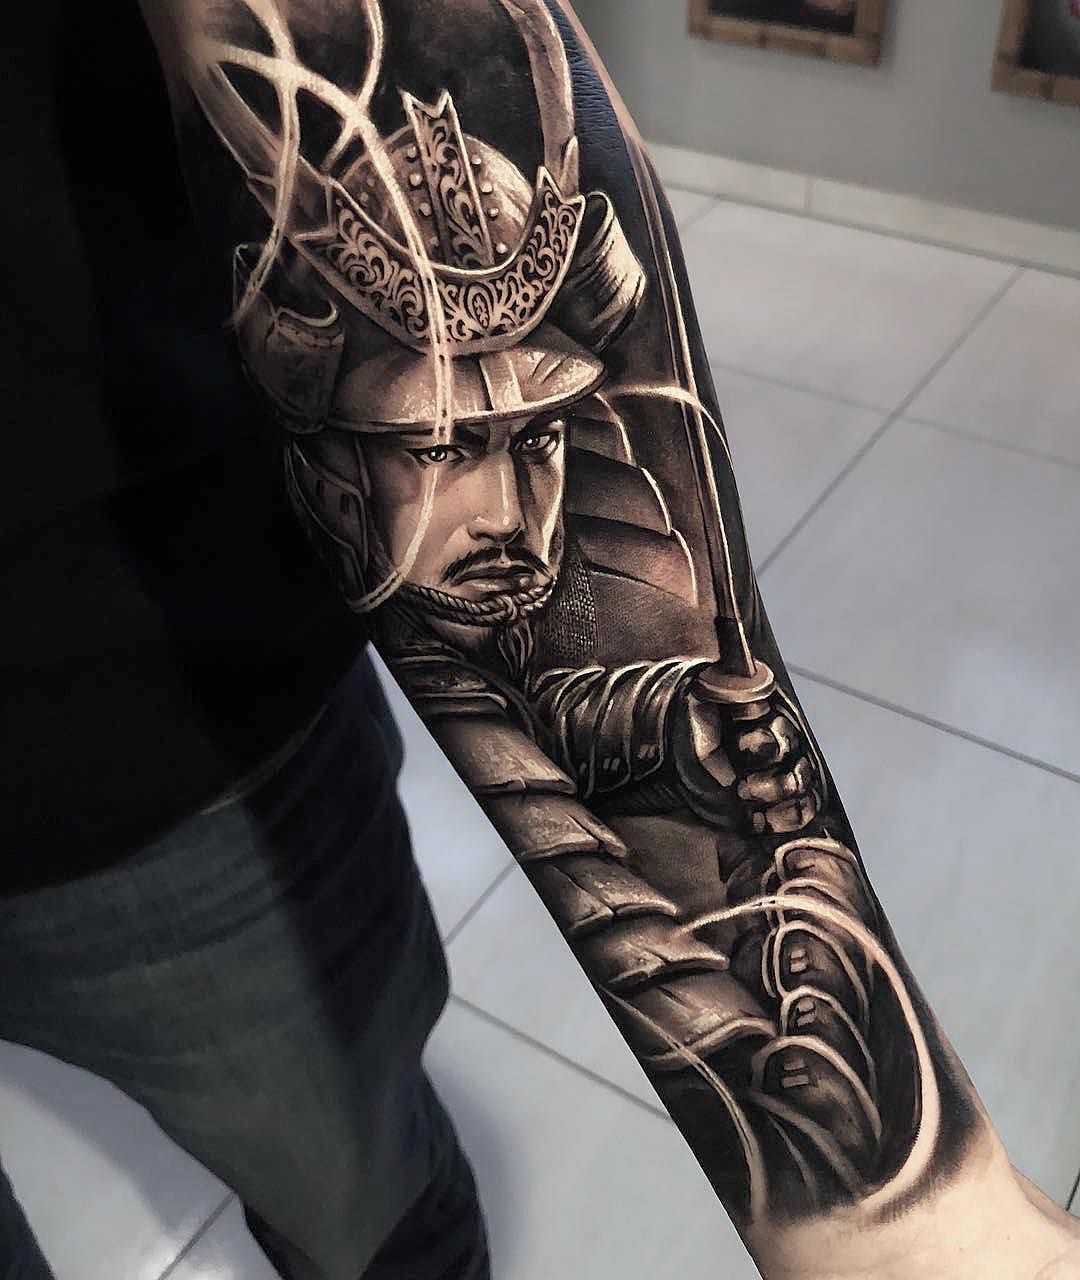 Marked for life tattoos and gangs warrior tattoo sleeve